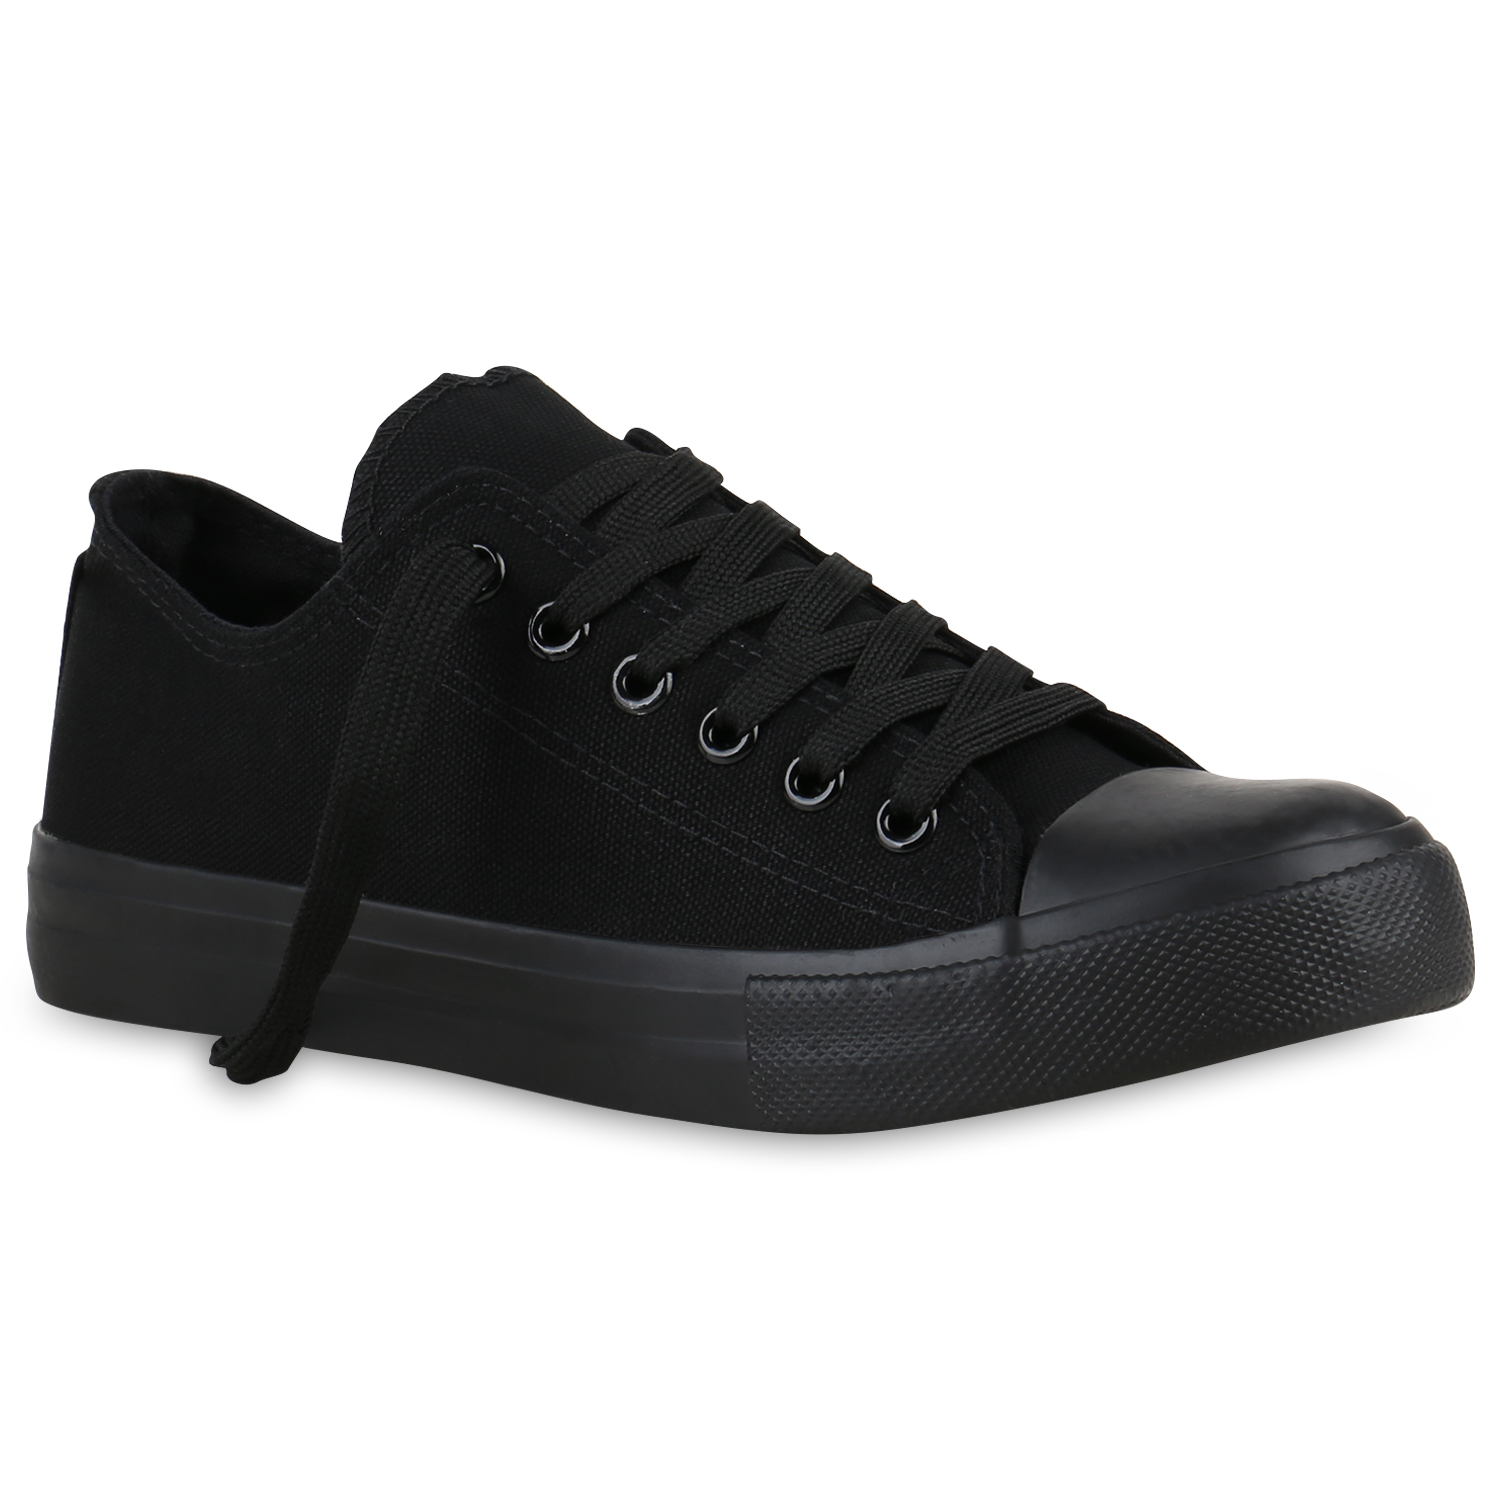 damen herren sneakers low canvas turnschuhe basic schuhe 812172 trendy neu ebay. Black Bedroom Furniture Sets. Home Design Ideas